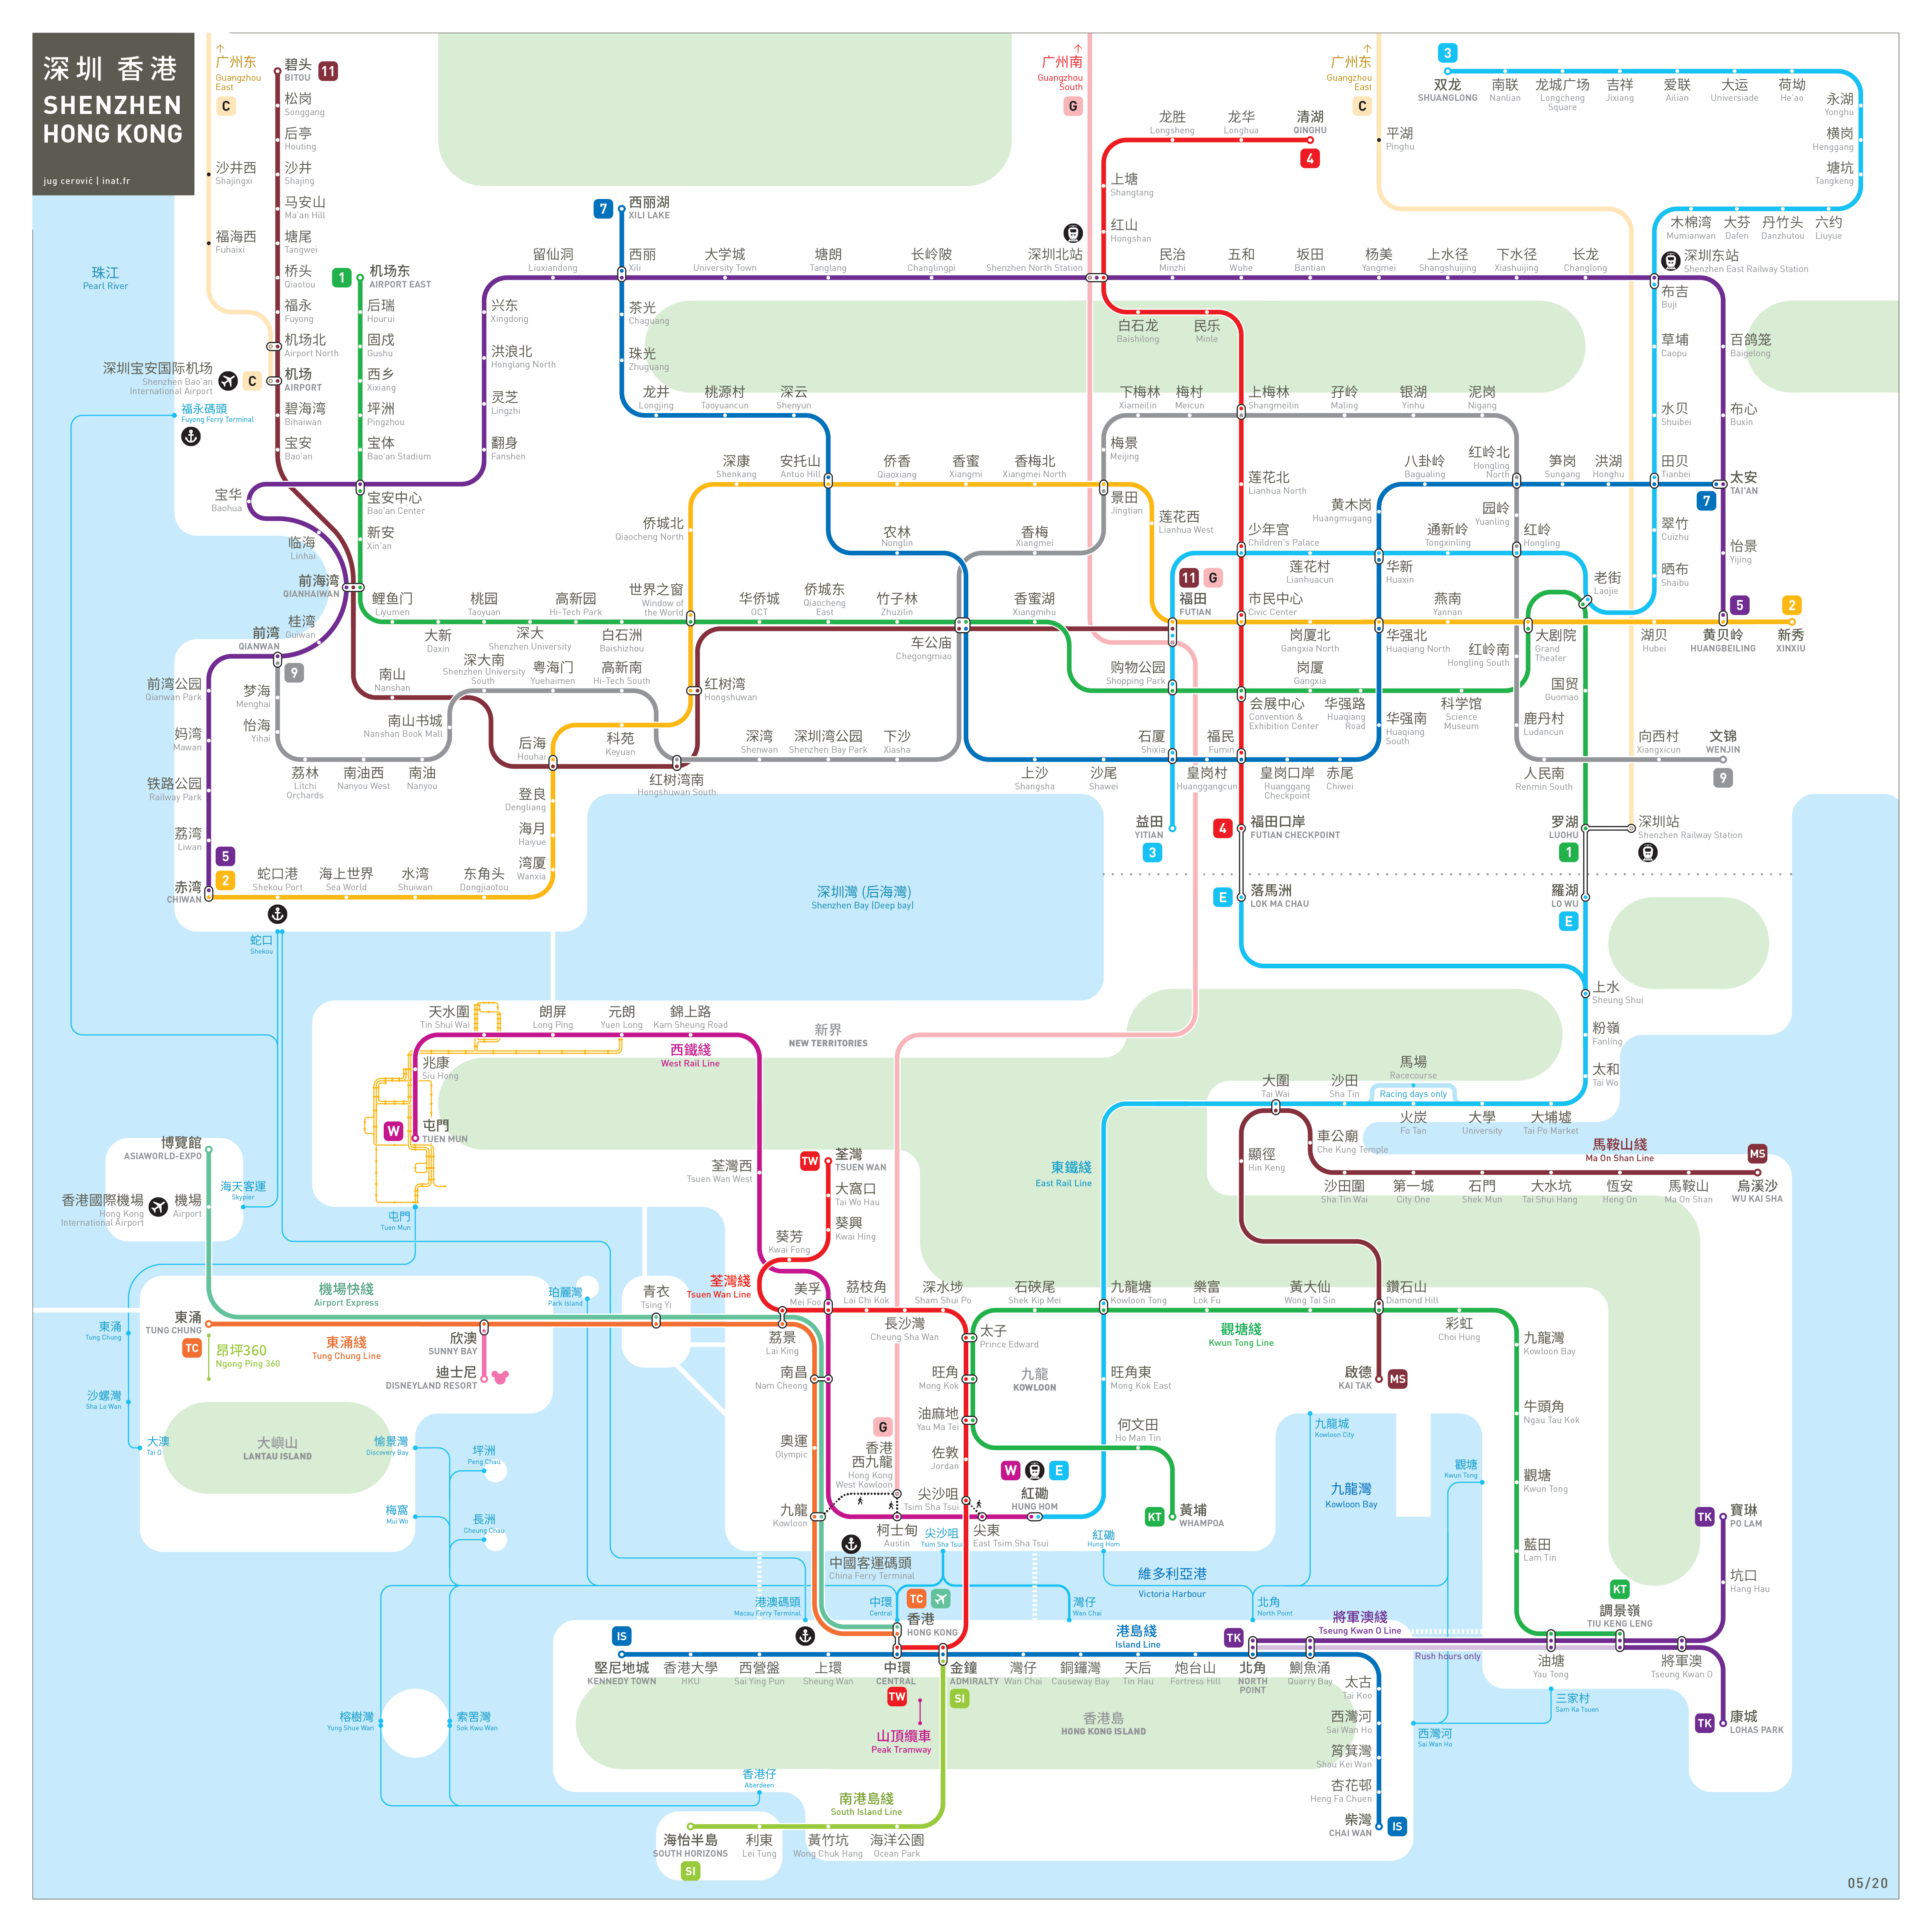 Hong Kong Shenzhen metro map